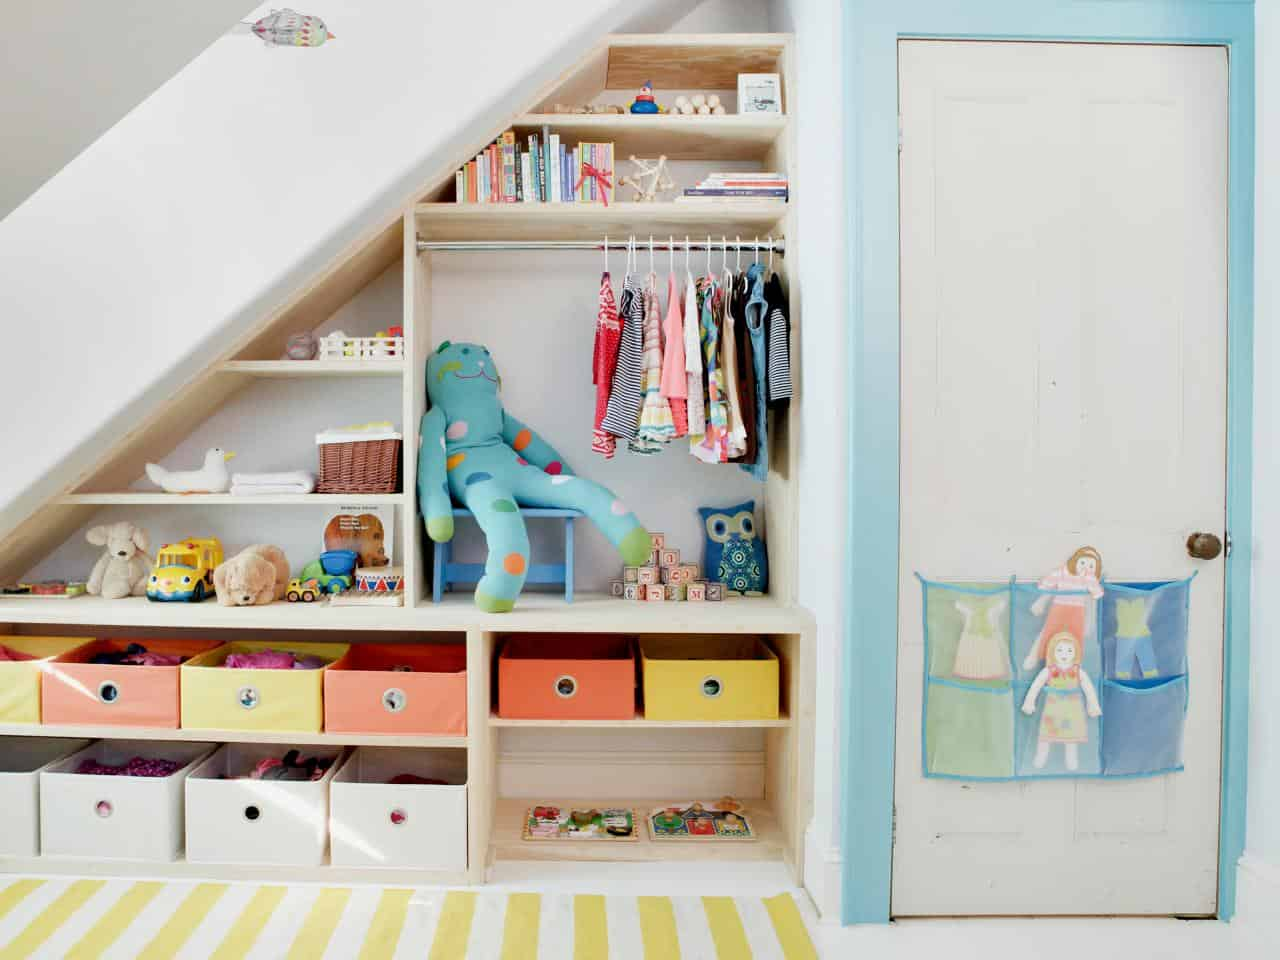 diy storage ideas for small apartments Narrow Space Storage Solutions